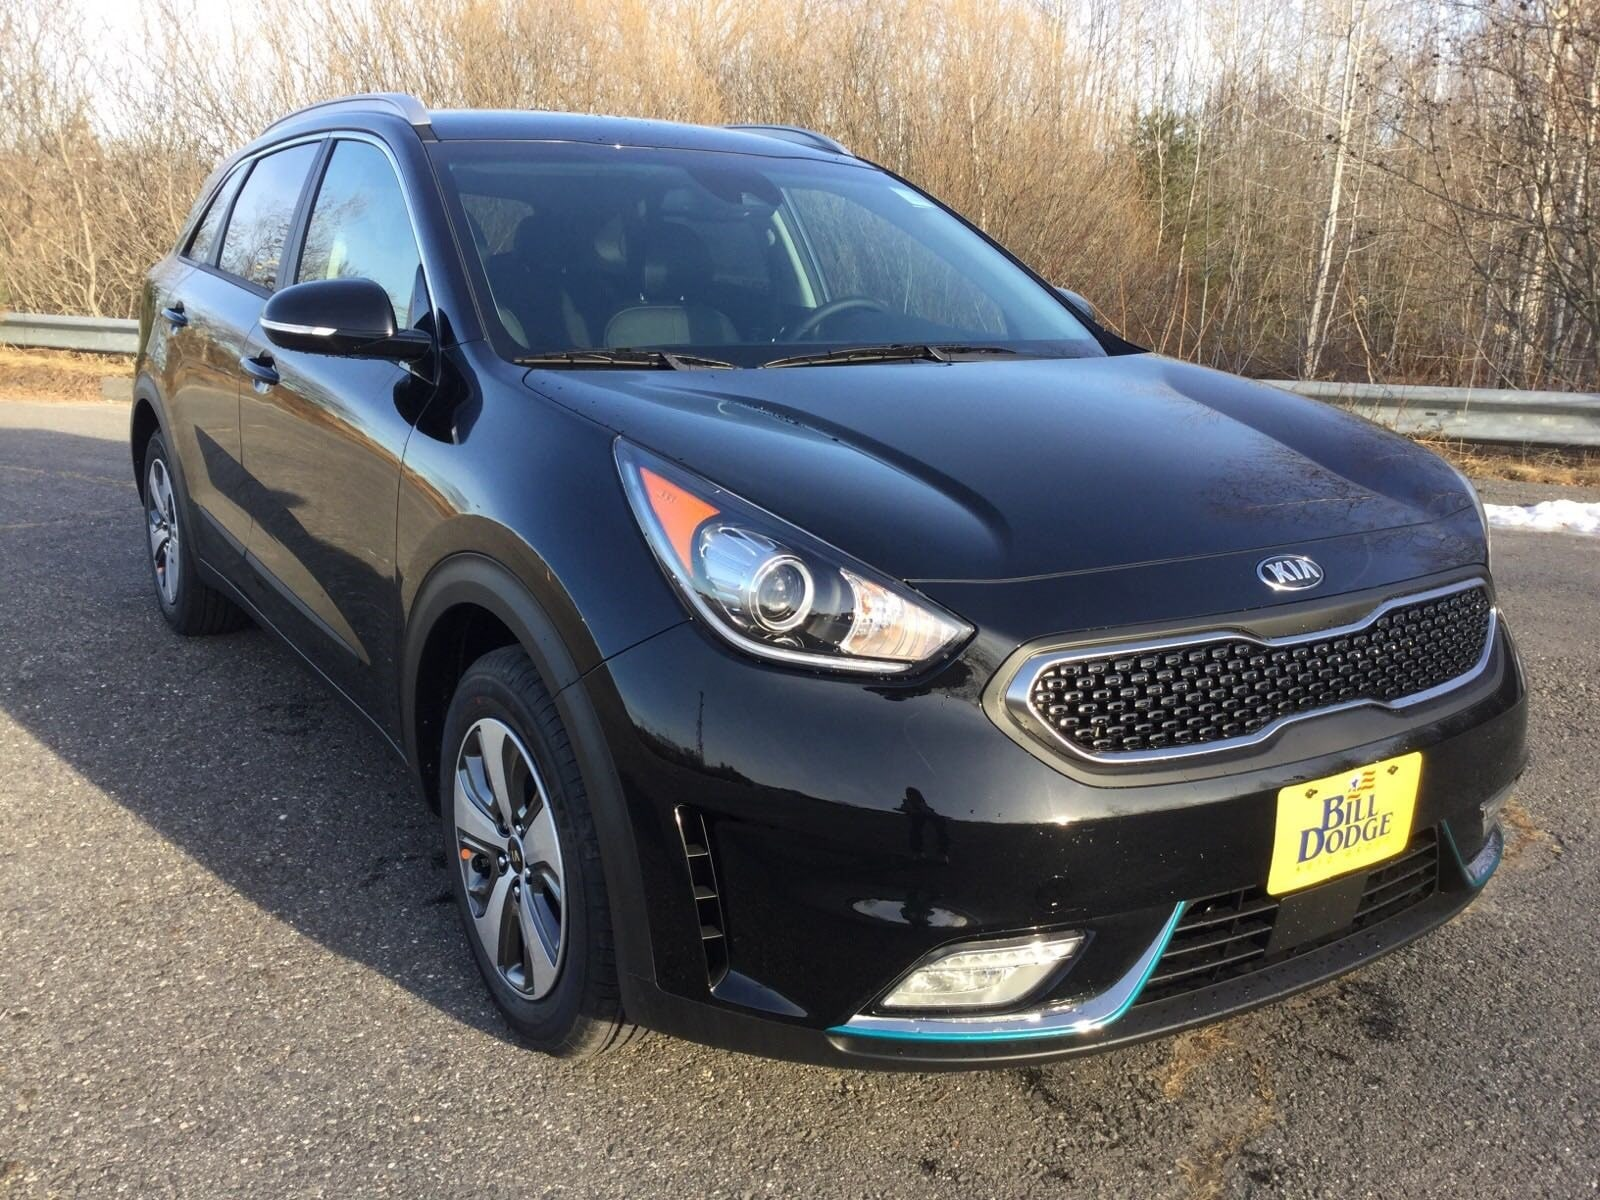 2019 kia niro plug in hybrid for sale in westbrook me. Black Bedroom Furniture Sets. Home Design Ideas